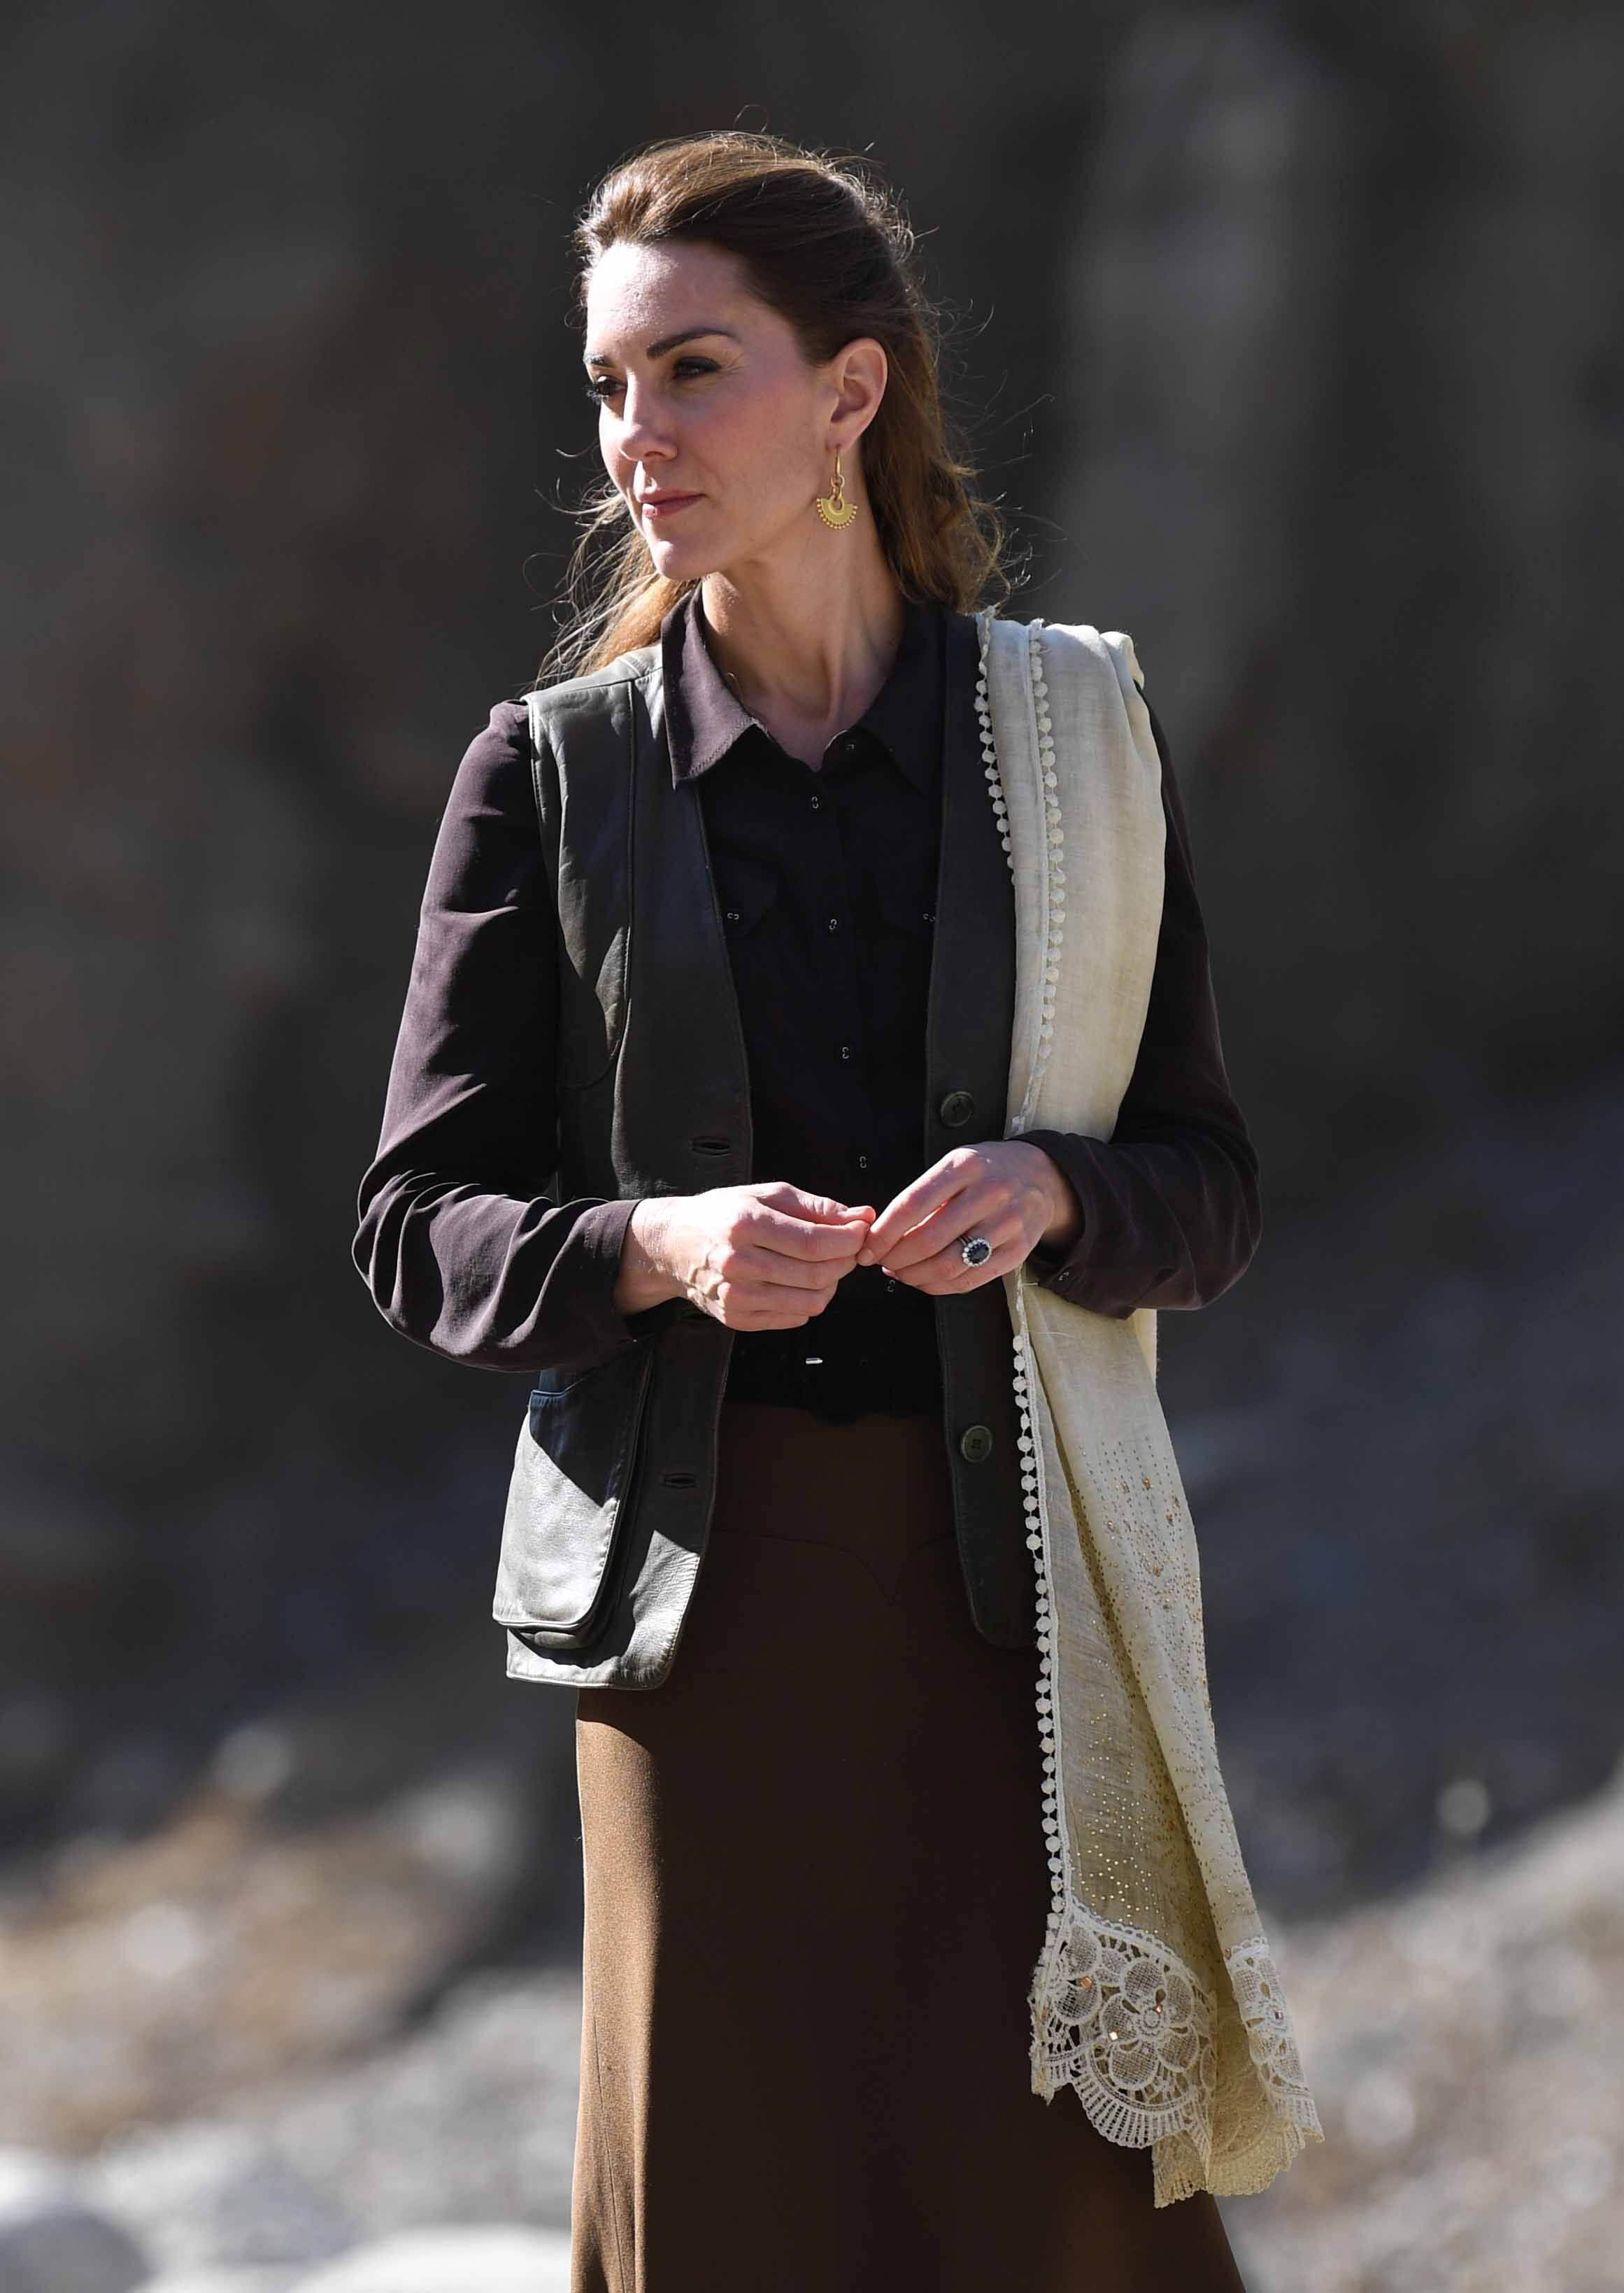 Kate Middleton visite les glaciers au Pakistan. | Source: Getty Images